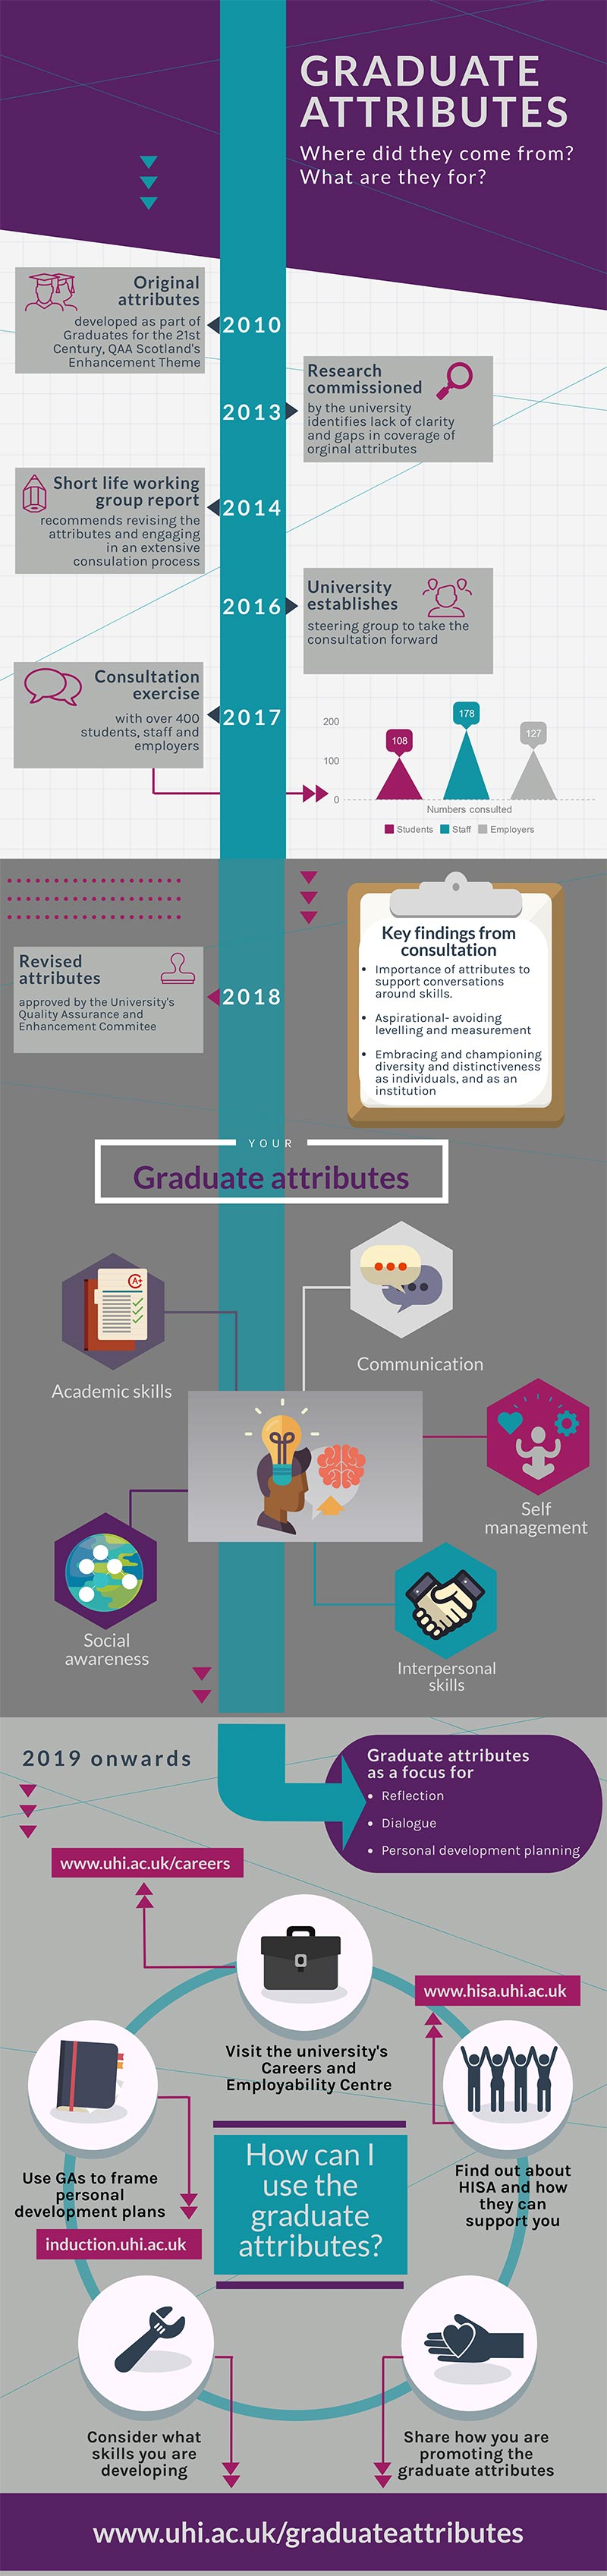 graduate attributes infographic